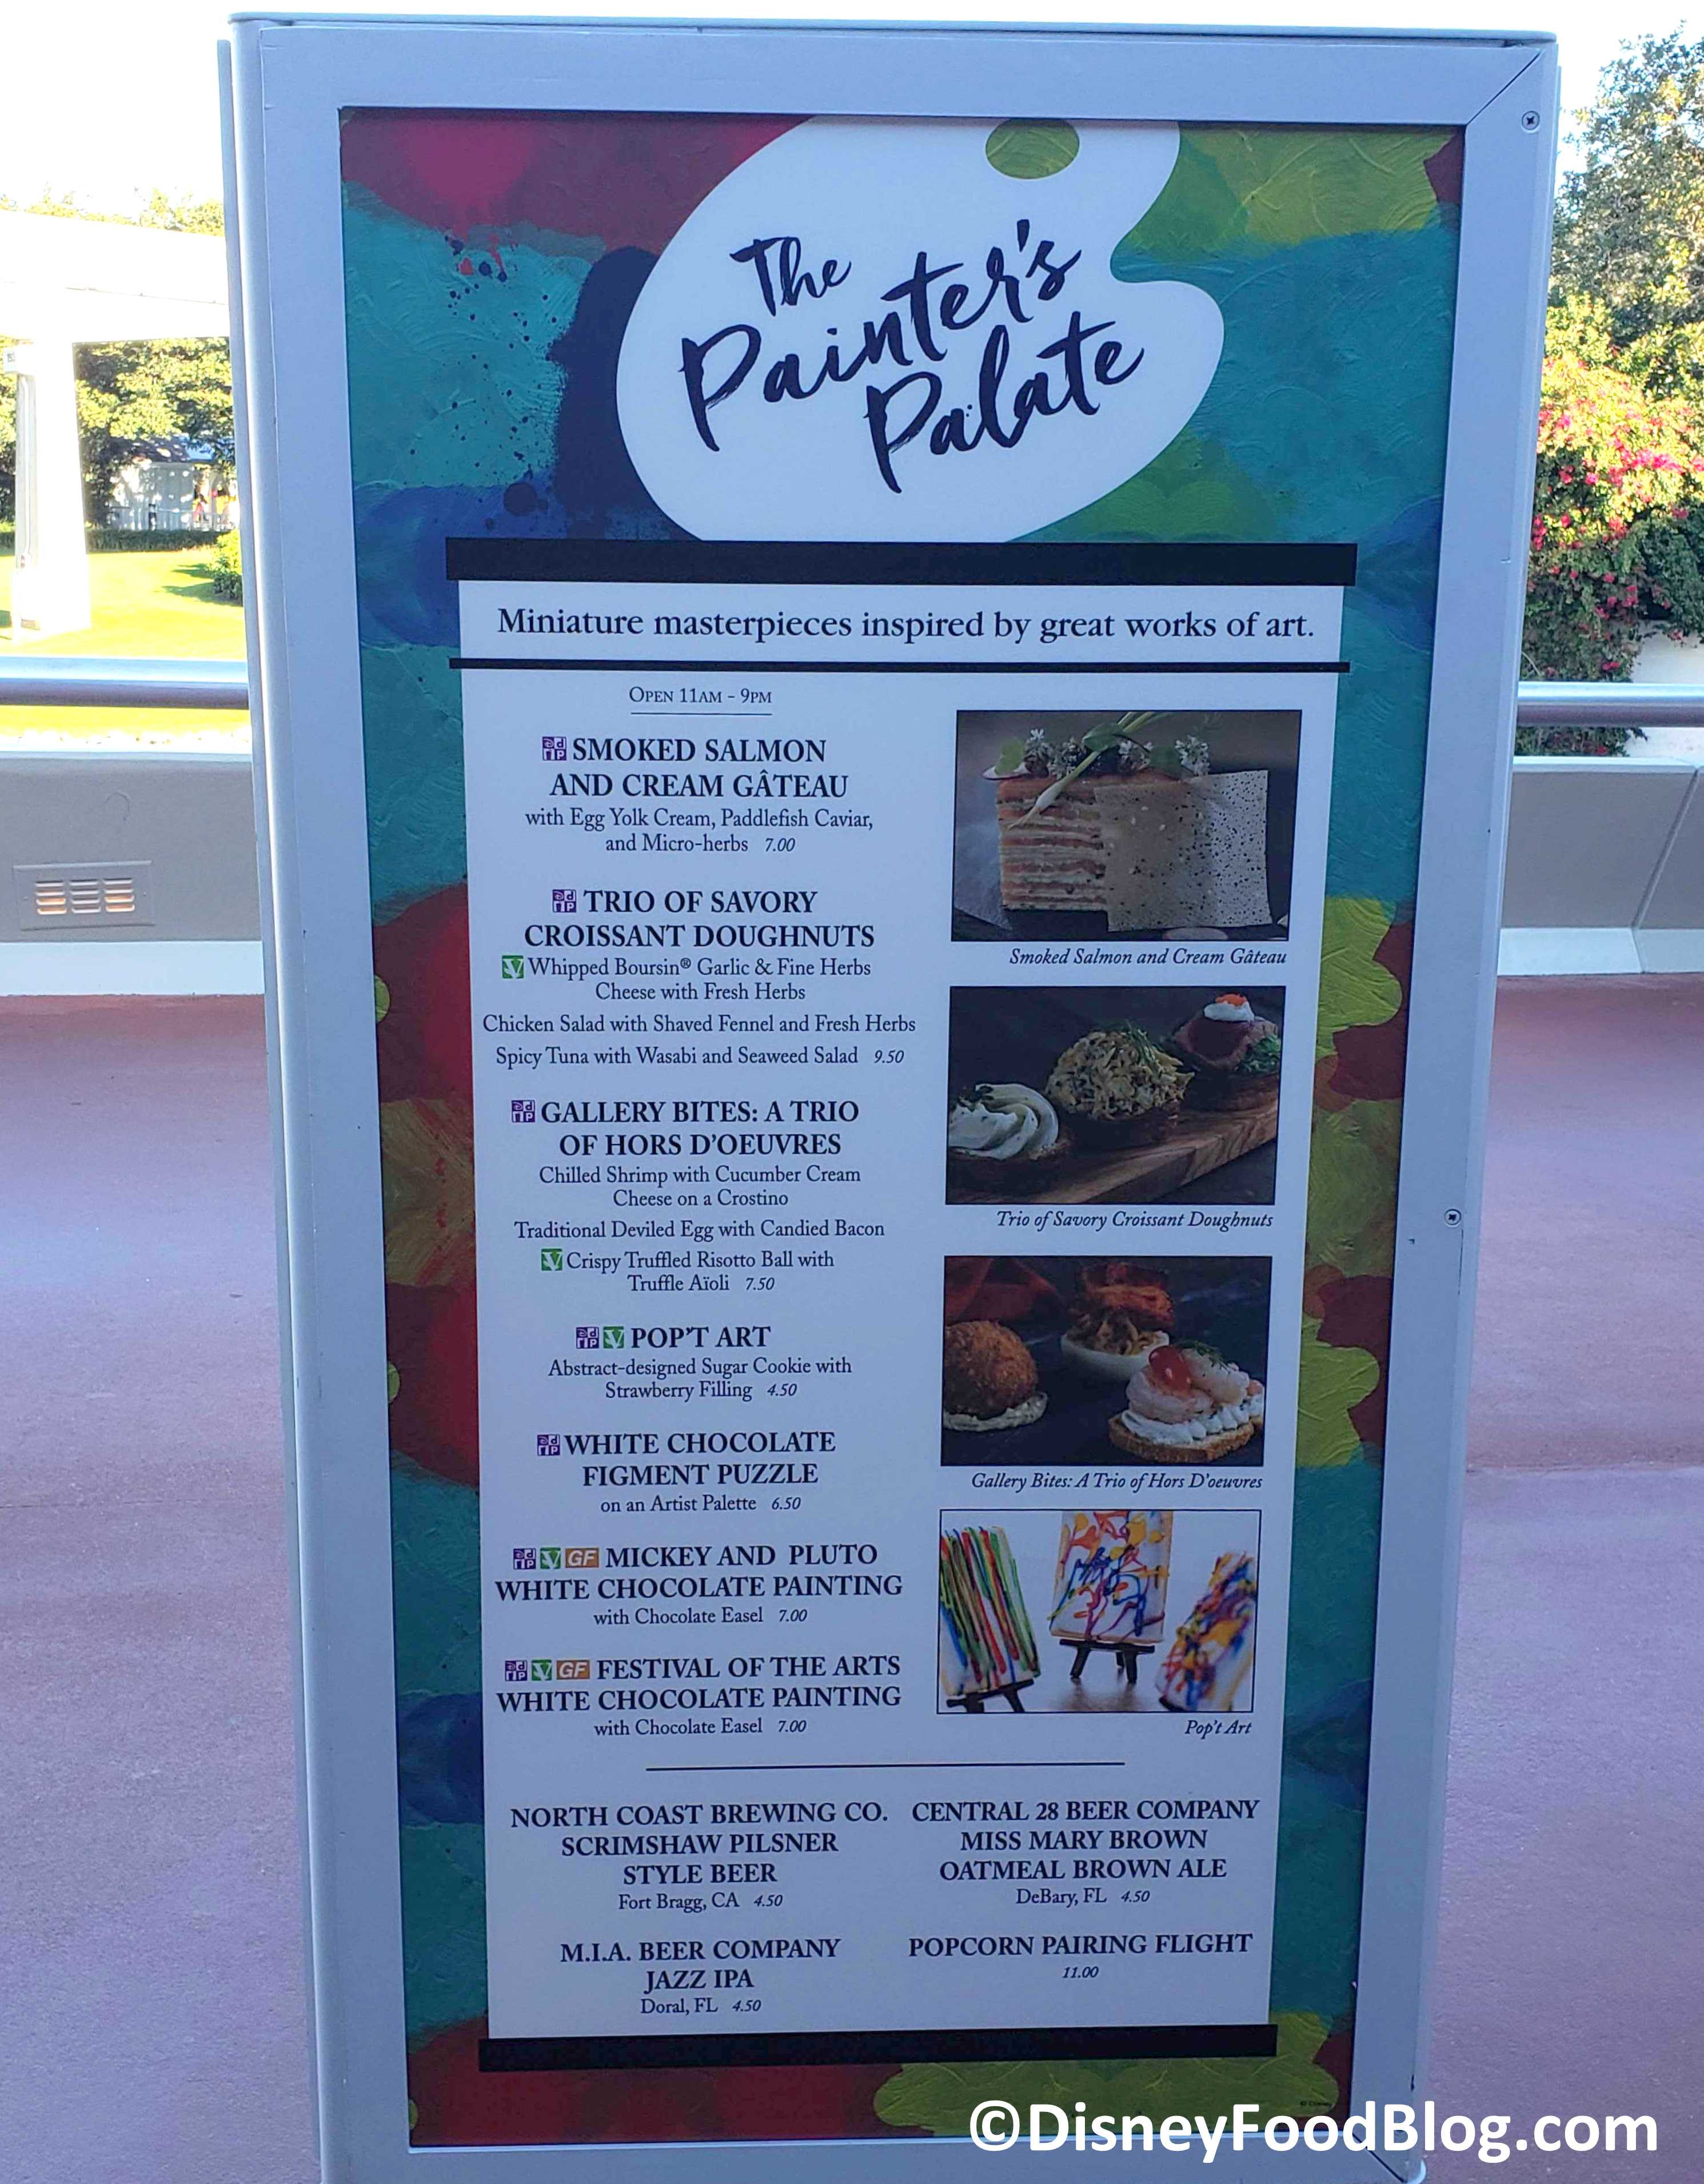 Epcot Festival Of The Arts 2020.2020 Epcot Festival Of The Arts The Painter S Palate